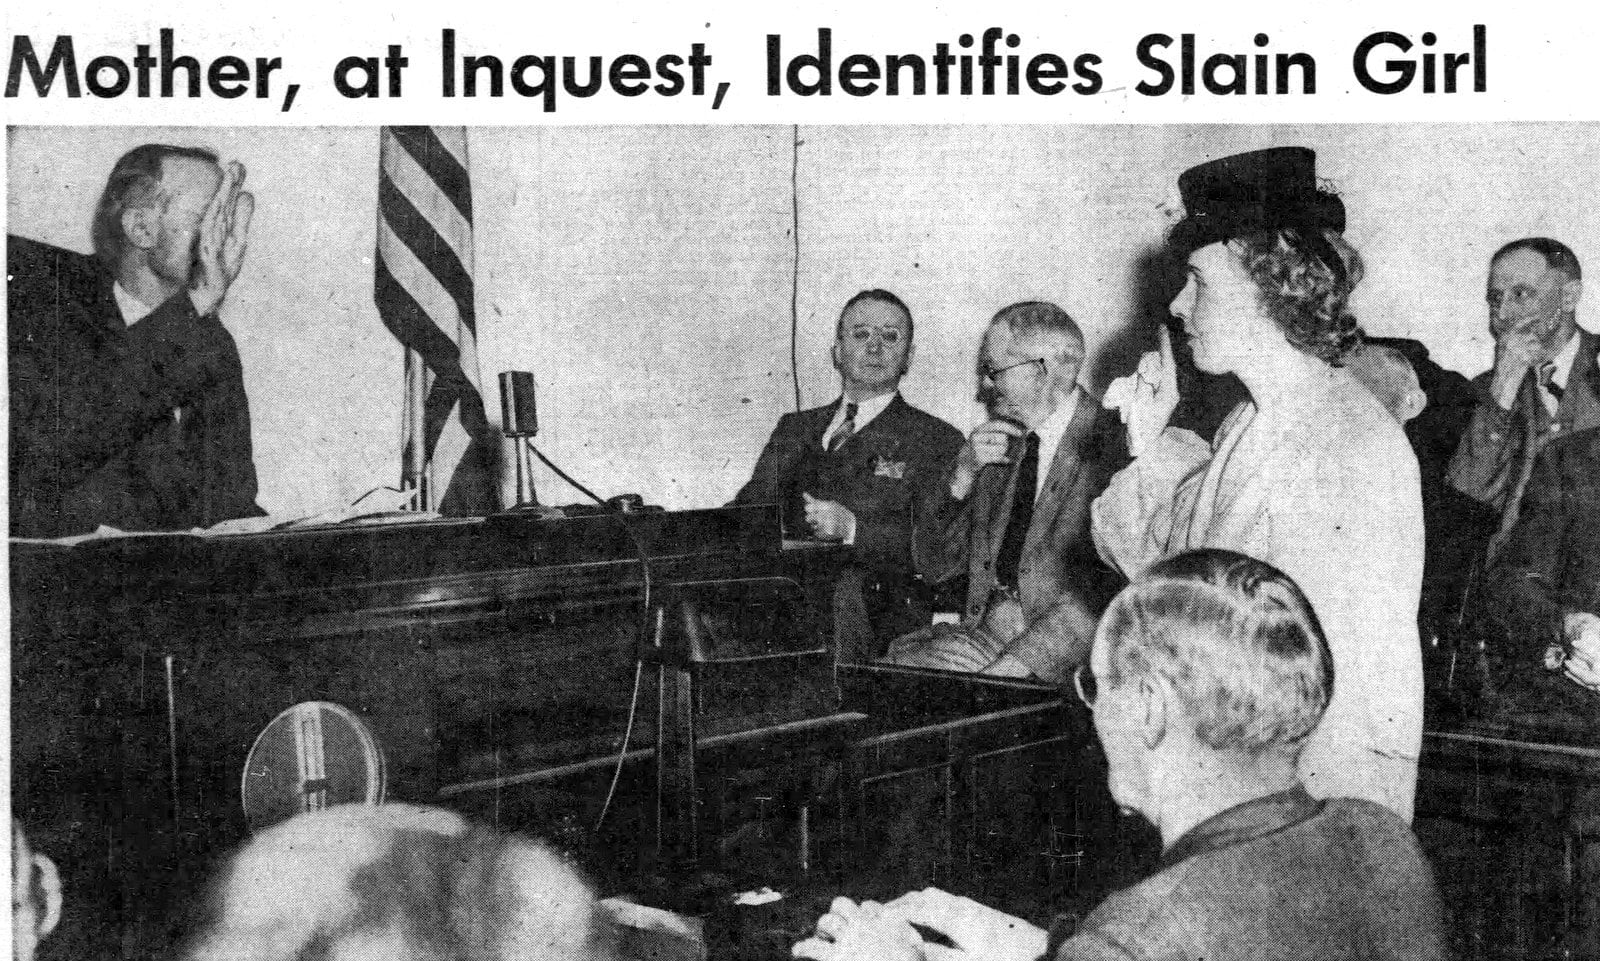 Elizabeth Short's mother identifying her in court - January 23 1947